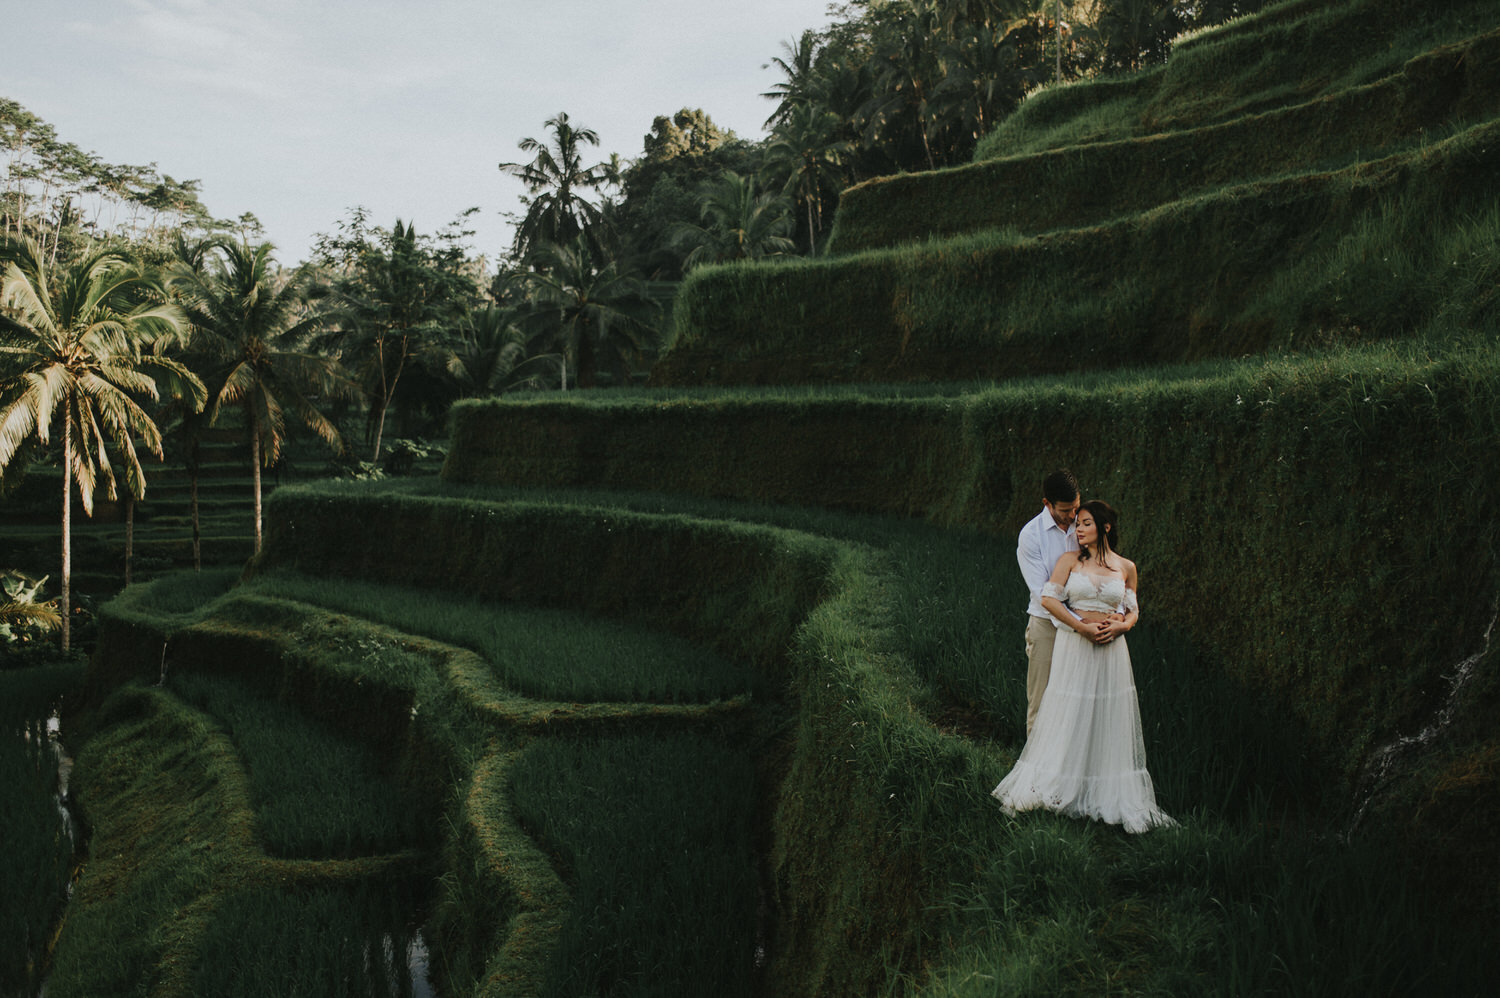 bali wedding - elopement - ubud wedding - diktatphotography - olga + Jason - 24